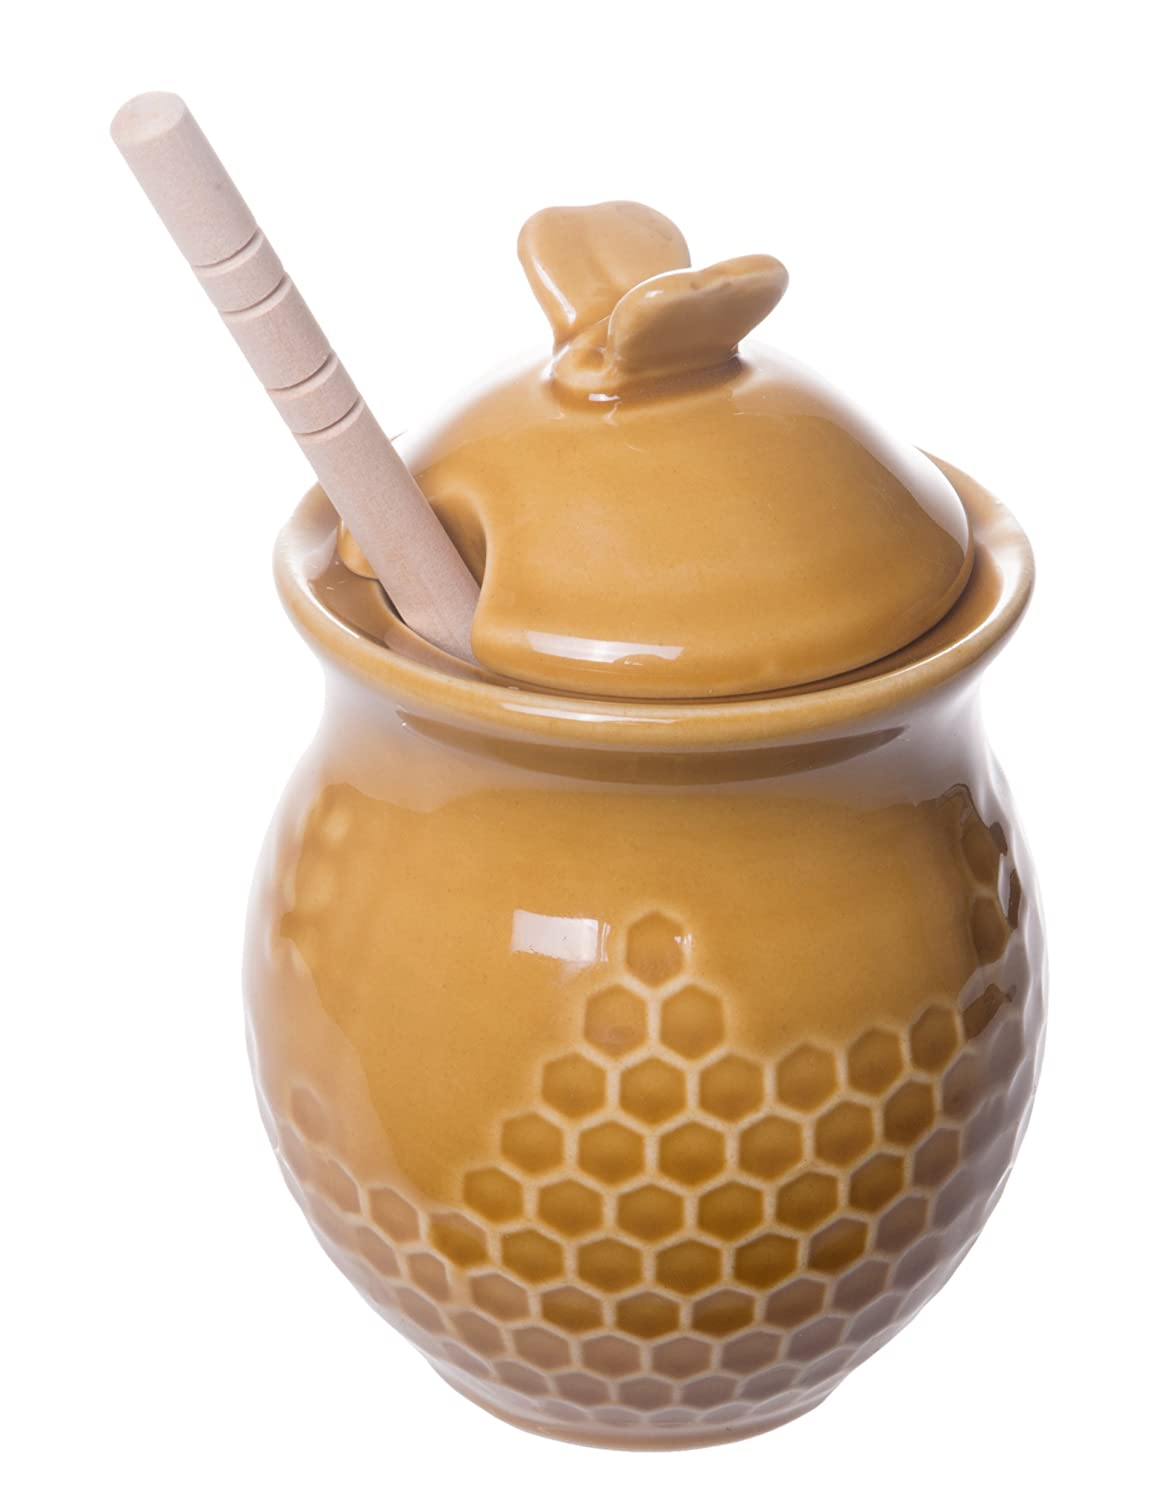 Adorable Honeycomb Shaped Honey Jar with Bamboo Honey Dipper Red Co 4-inch Gold Finish